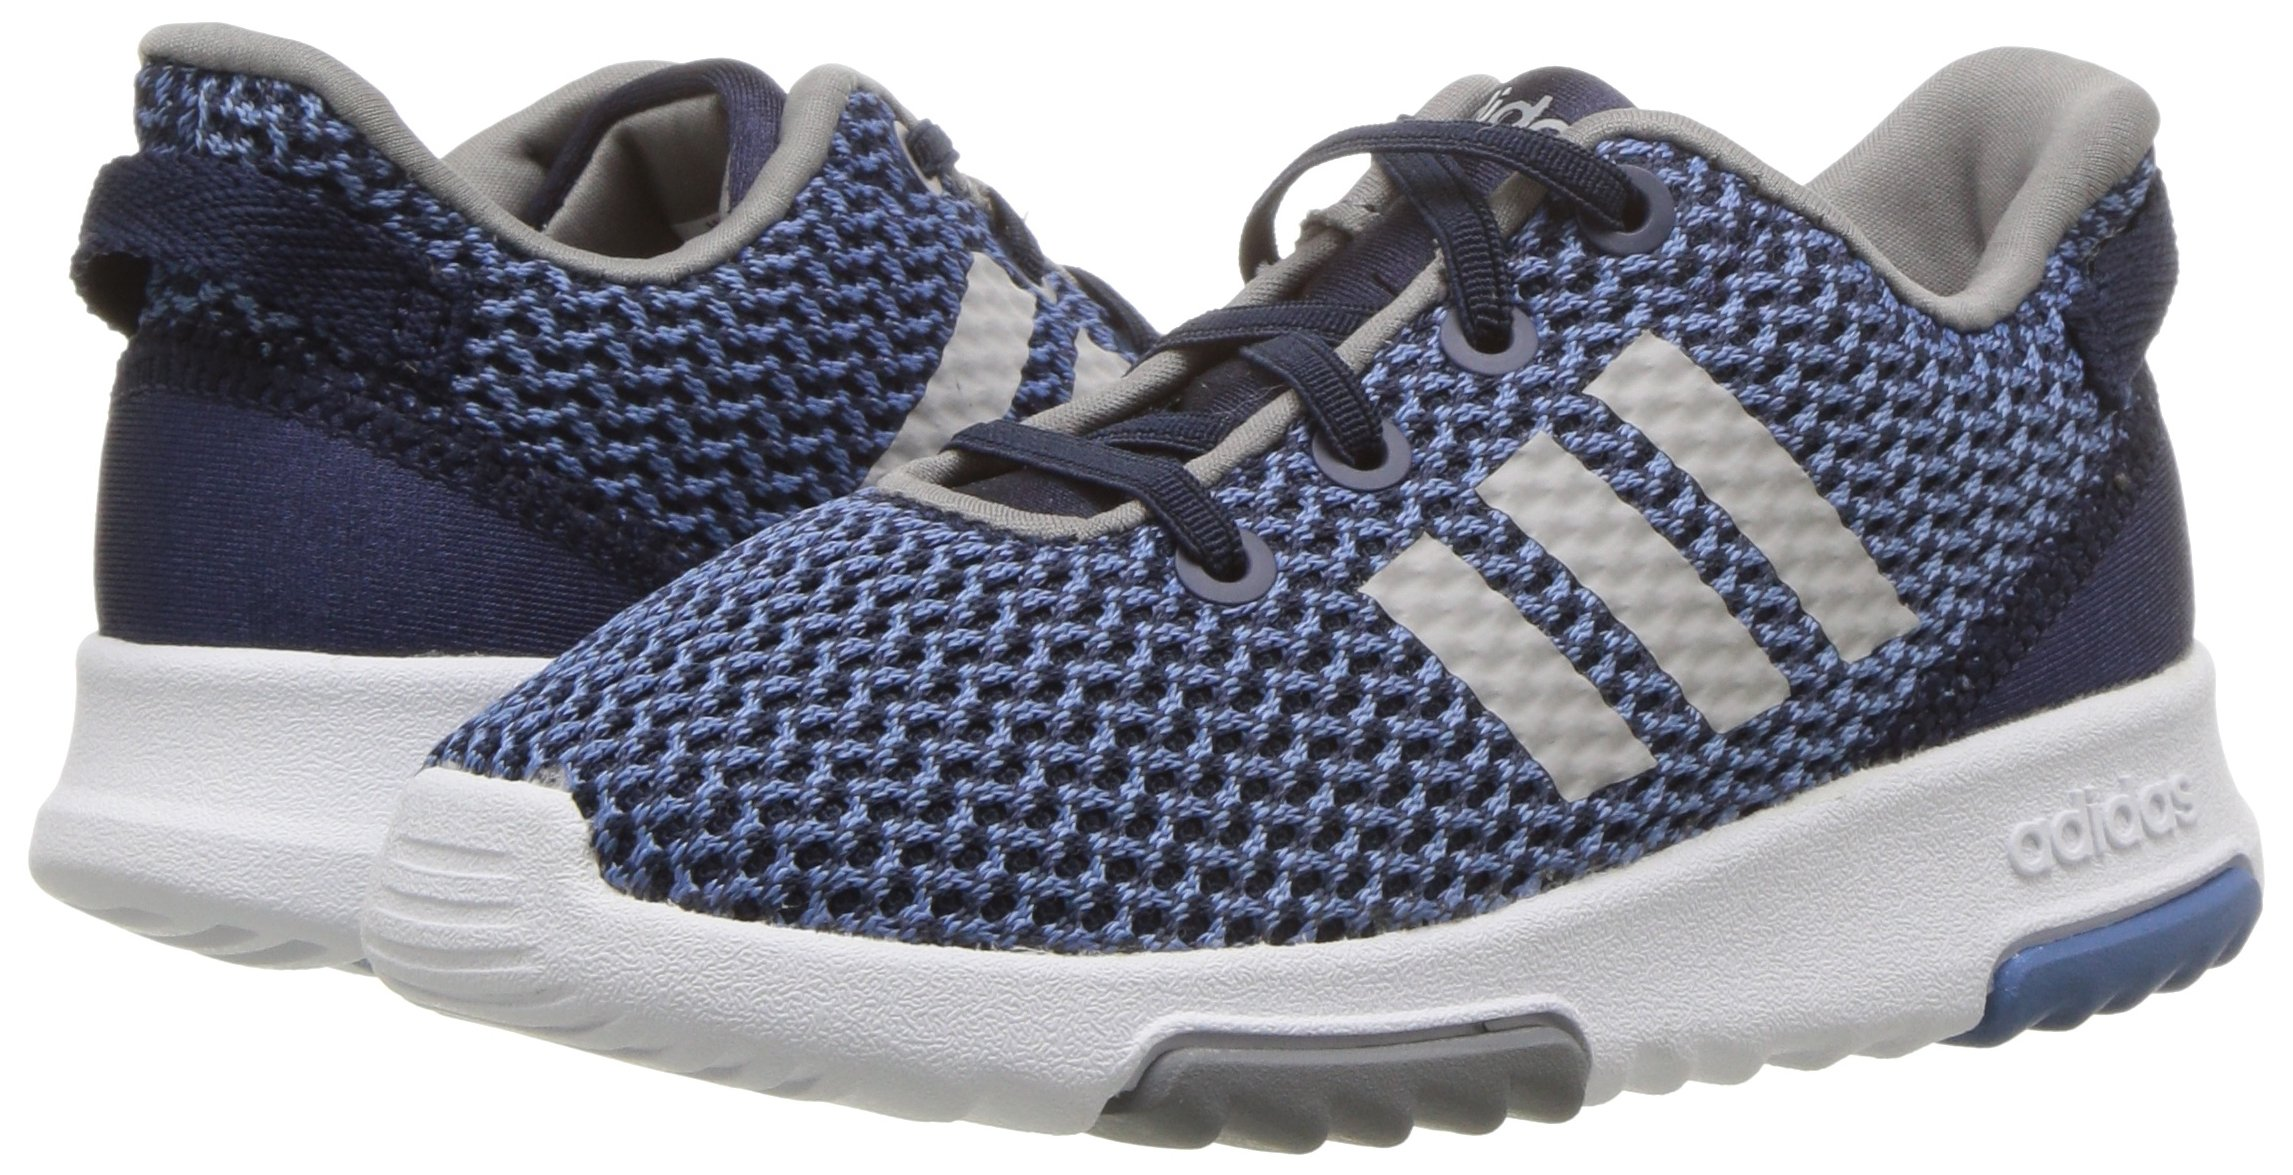 adidas Kids CF Racer TR Running Shoe, Collegiate Navy/Collegiate Navy/Grey, 5K M US Toddler by adidas (Image #6)